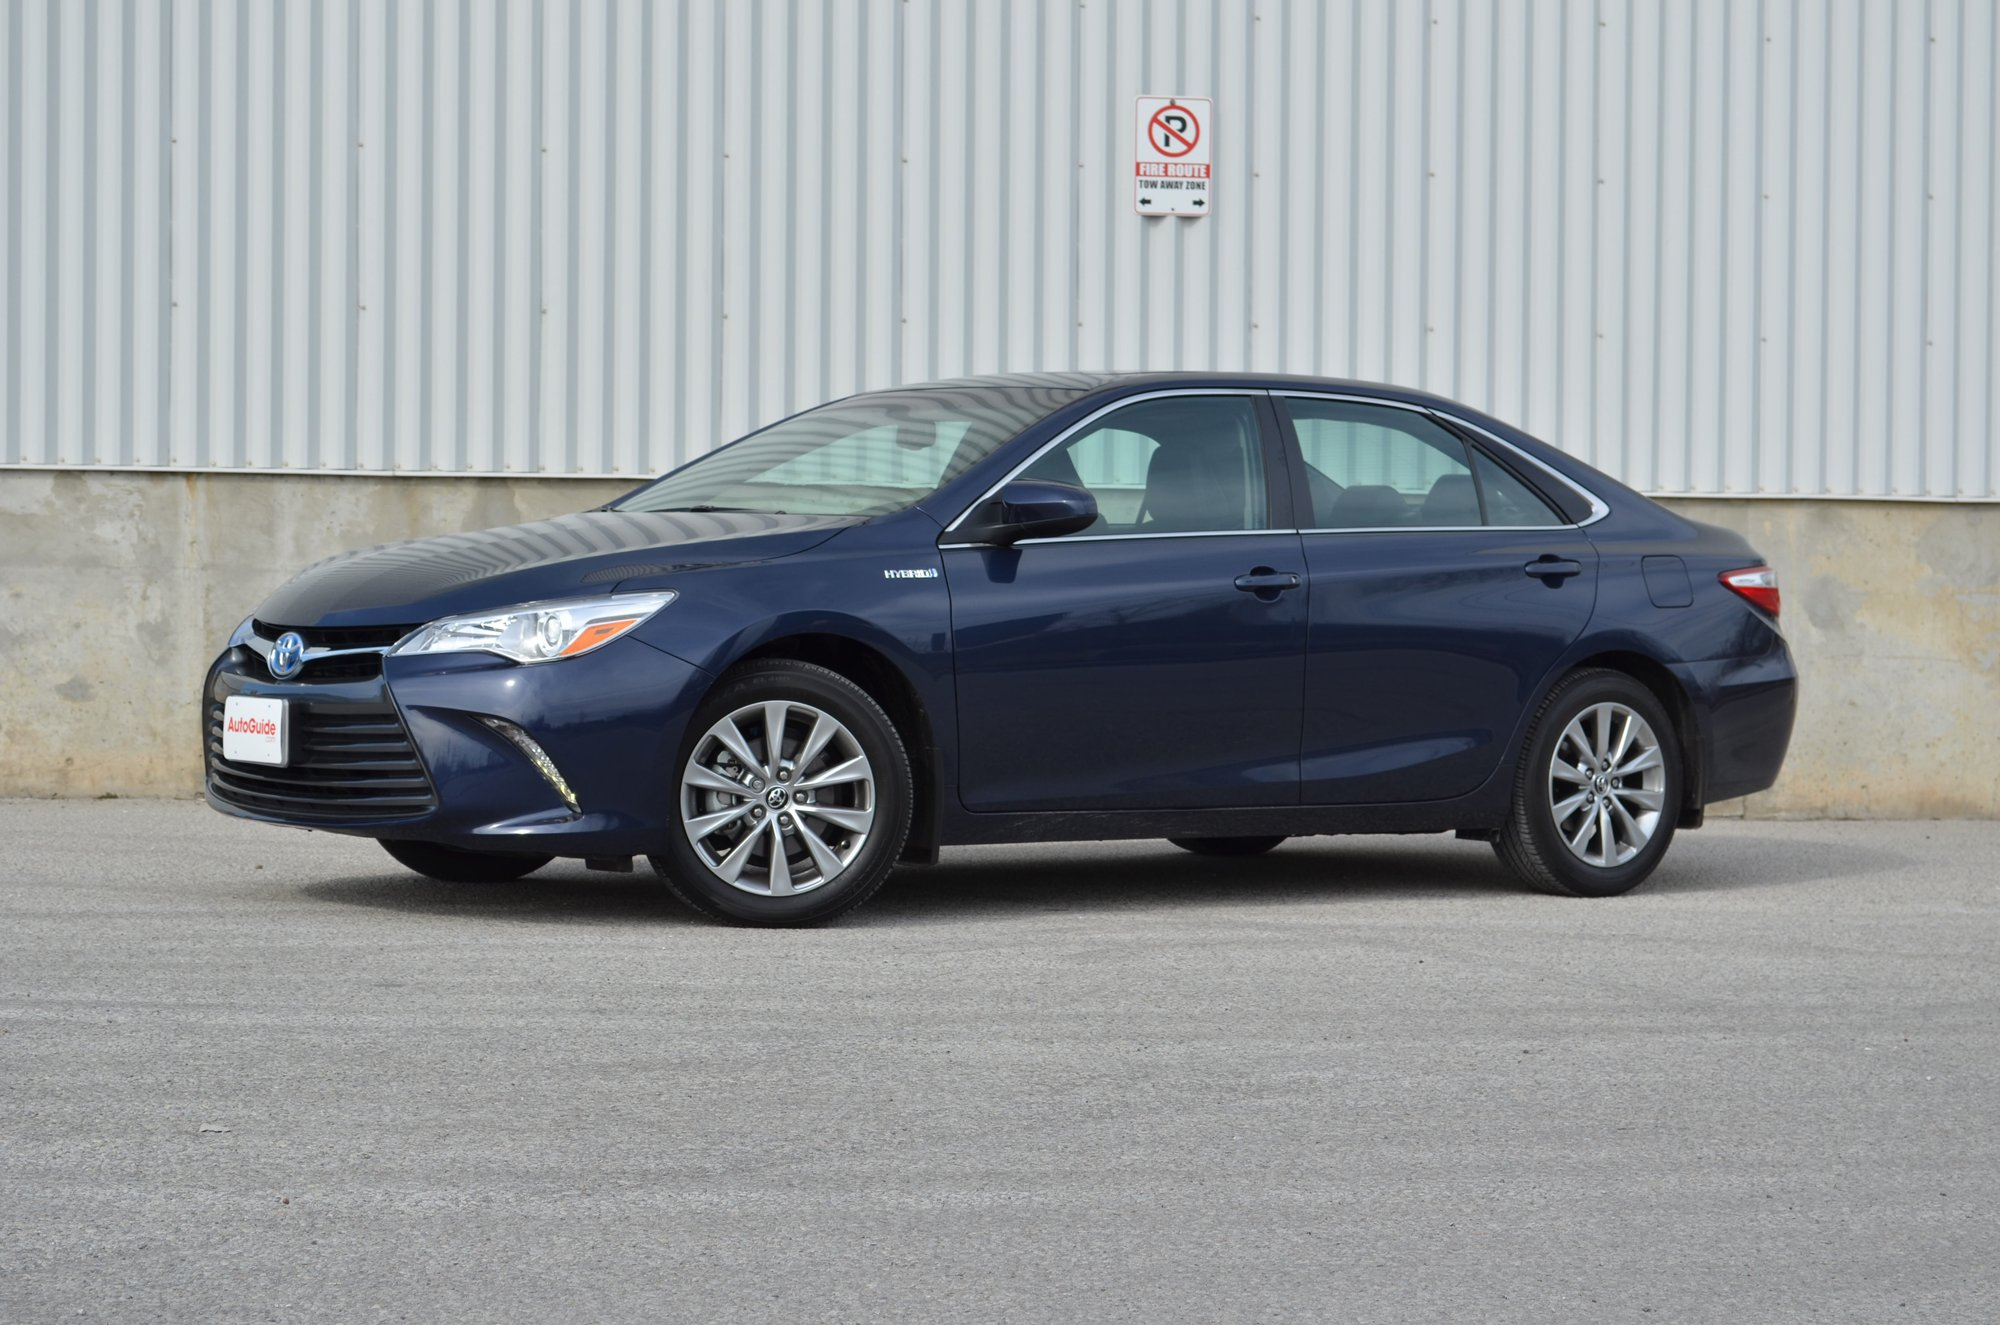 2015 toyota camry hybrid review specs price release date redesign. Black Bedroom Furniture Sets. Home Design Ideas